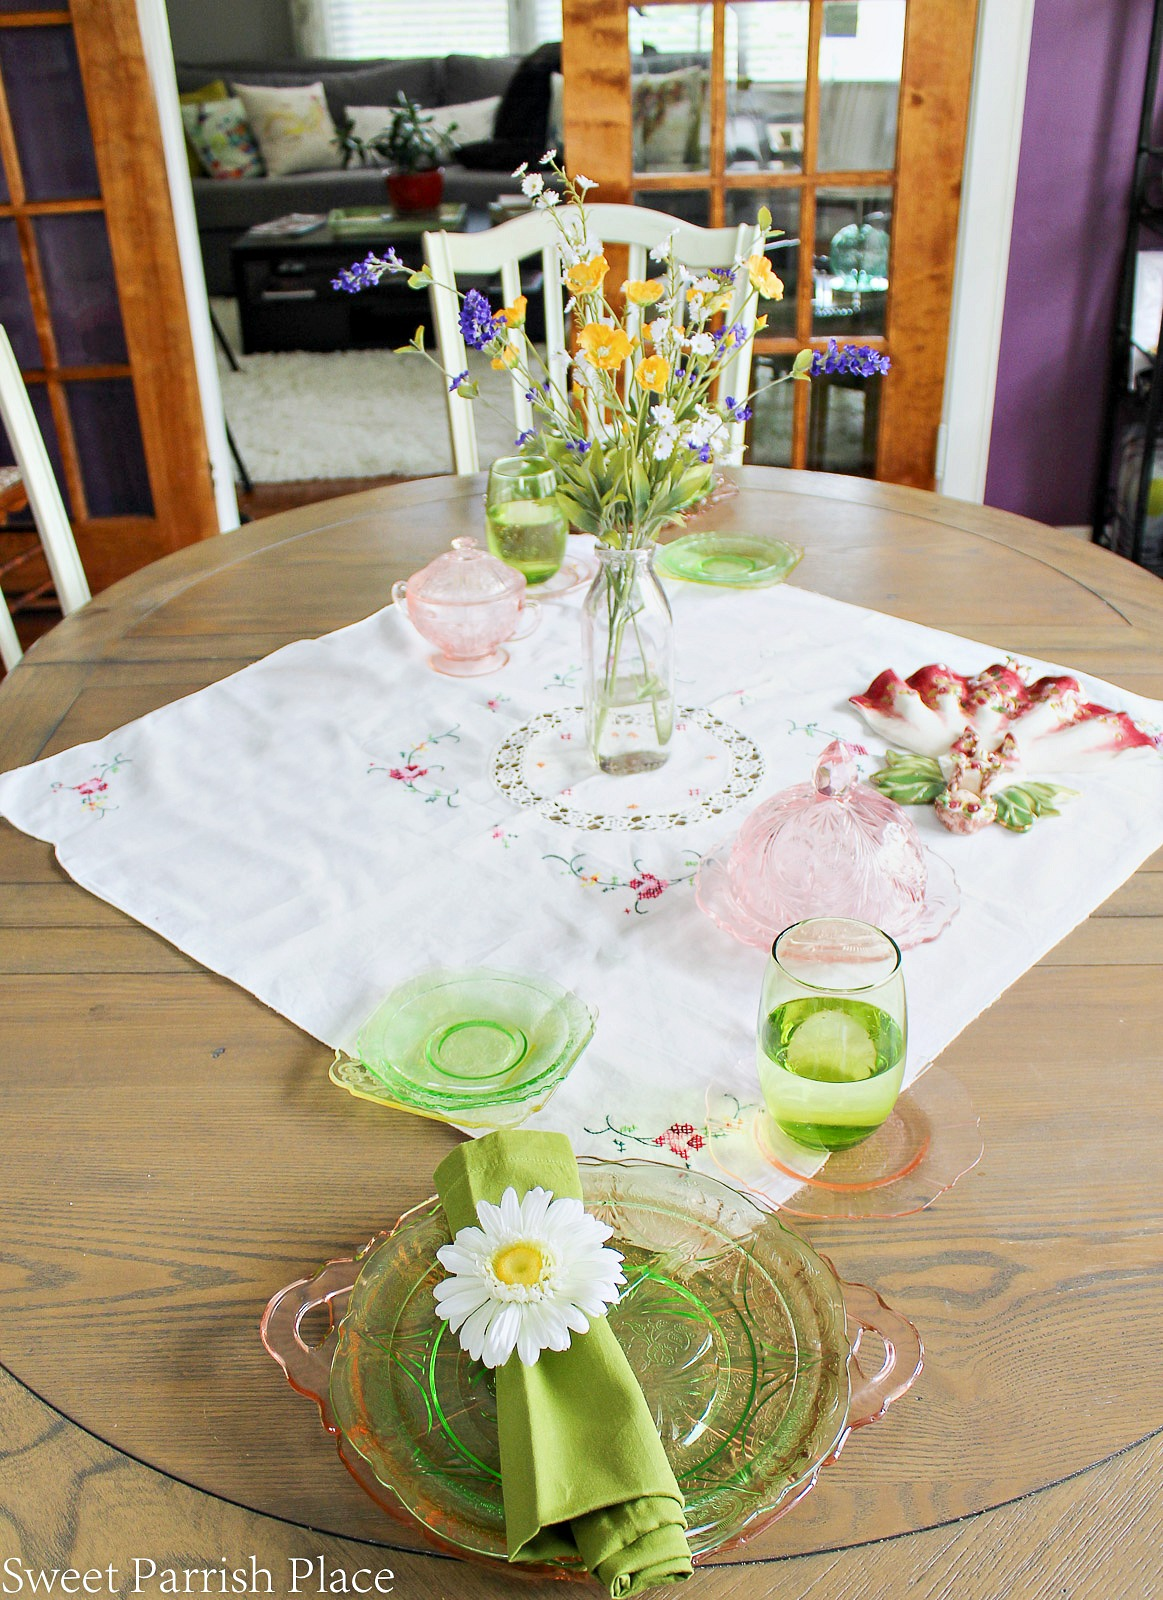 97 year old home tour- dining table setting